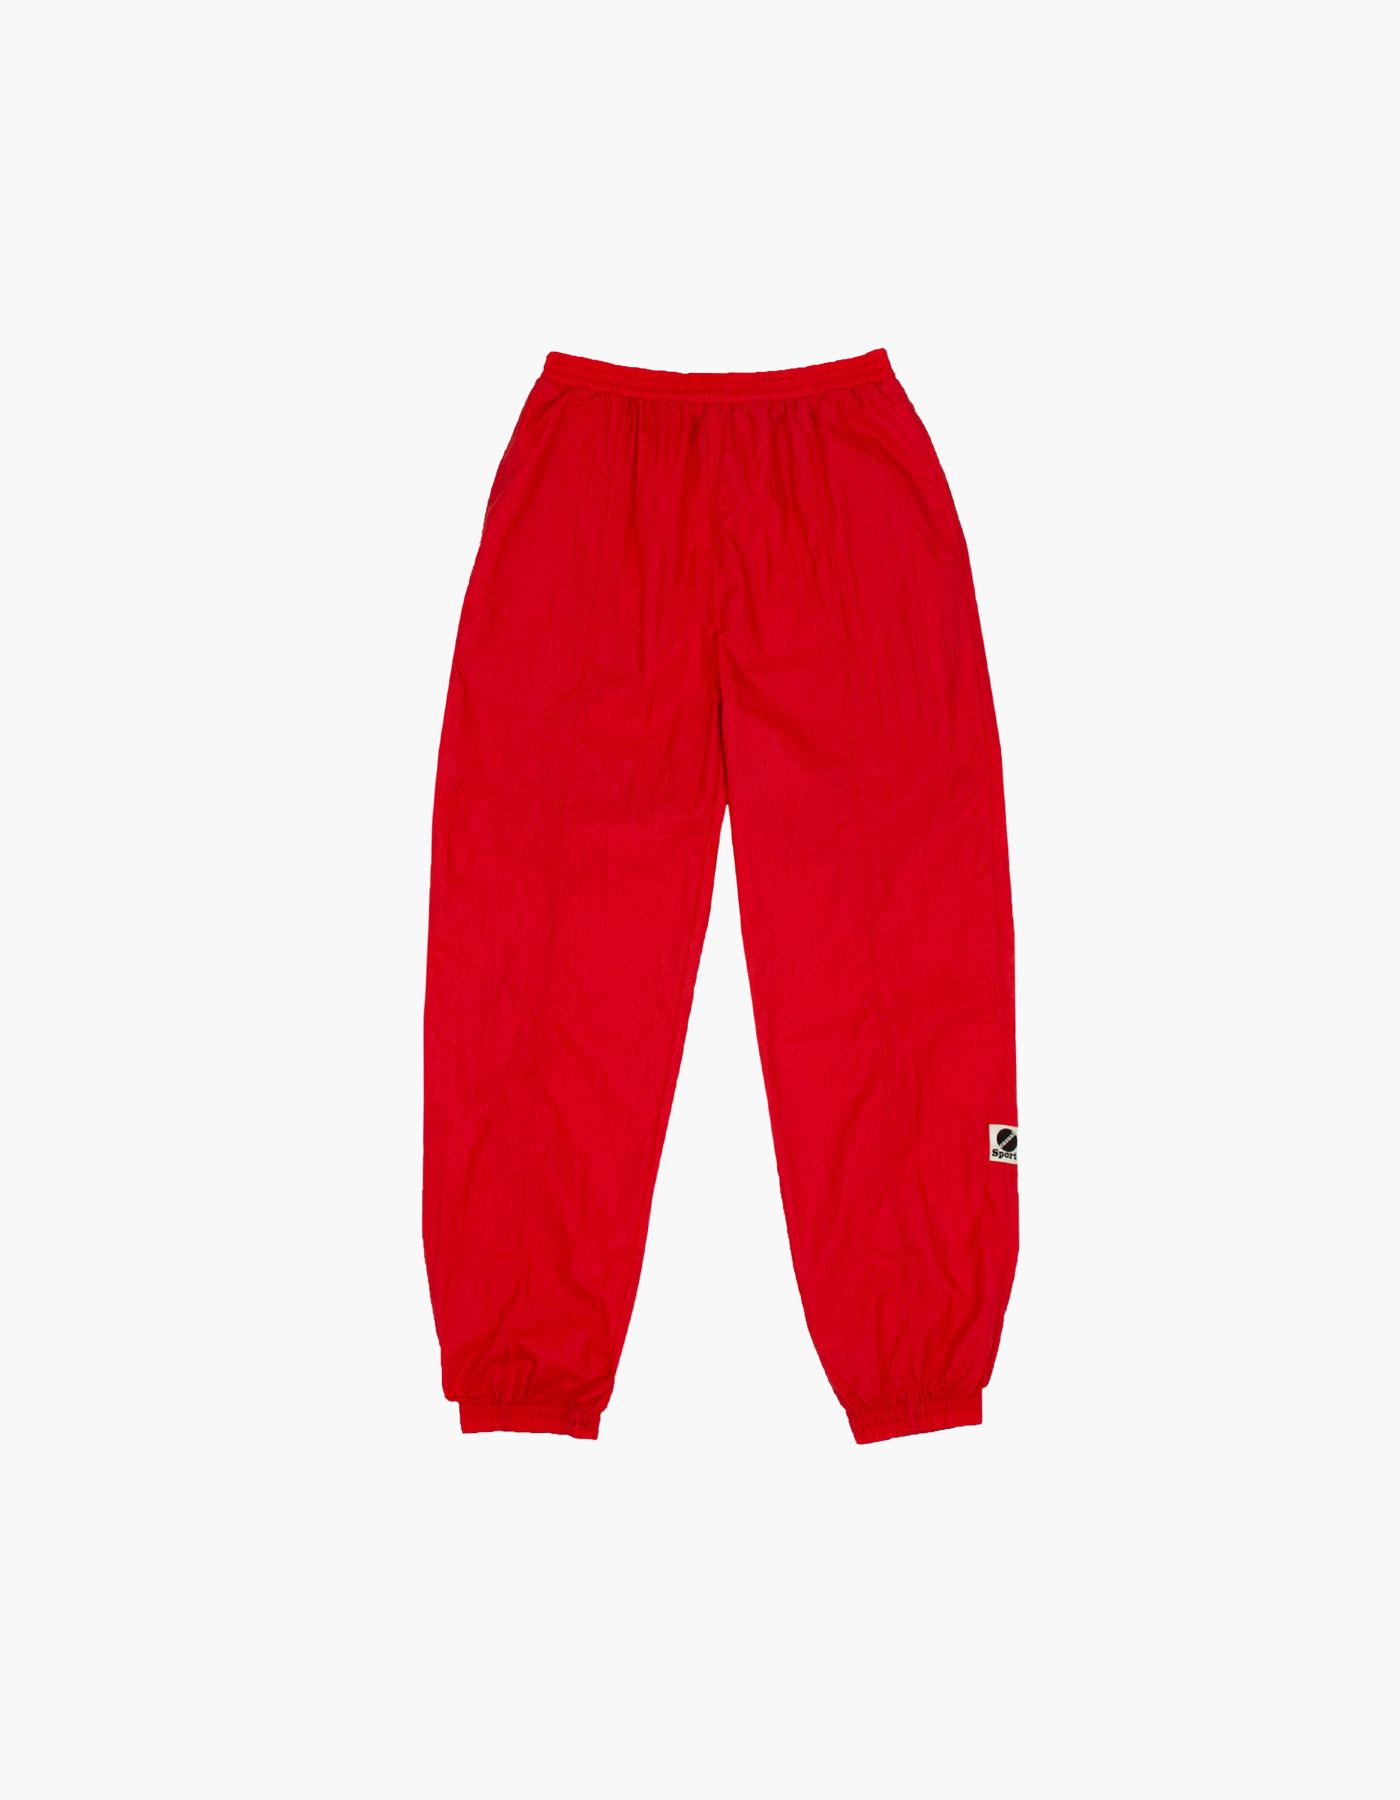 NYLON DIAMOND WASHER PANTS / RED